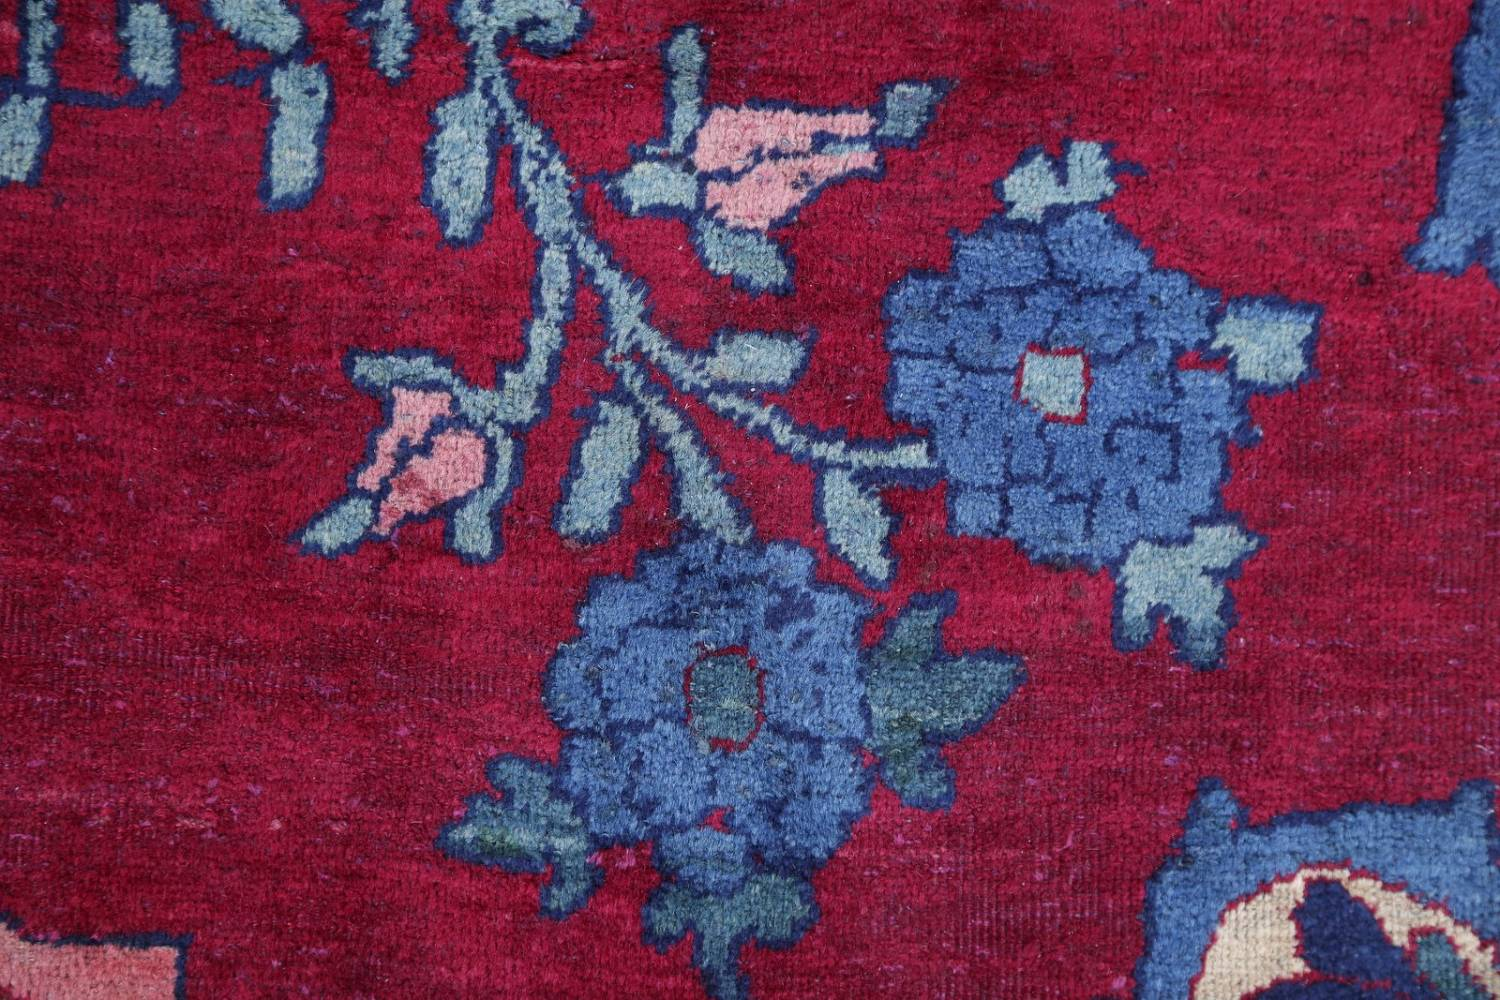 Pre-1900 Vegetable Dye Yazd Antique Persian Hand-Knotted  11x15 Wool Area Rug image 7